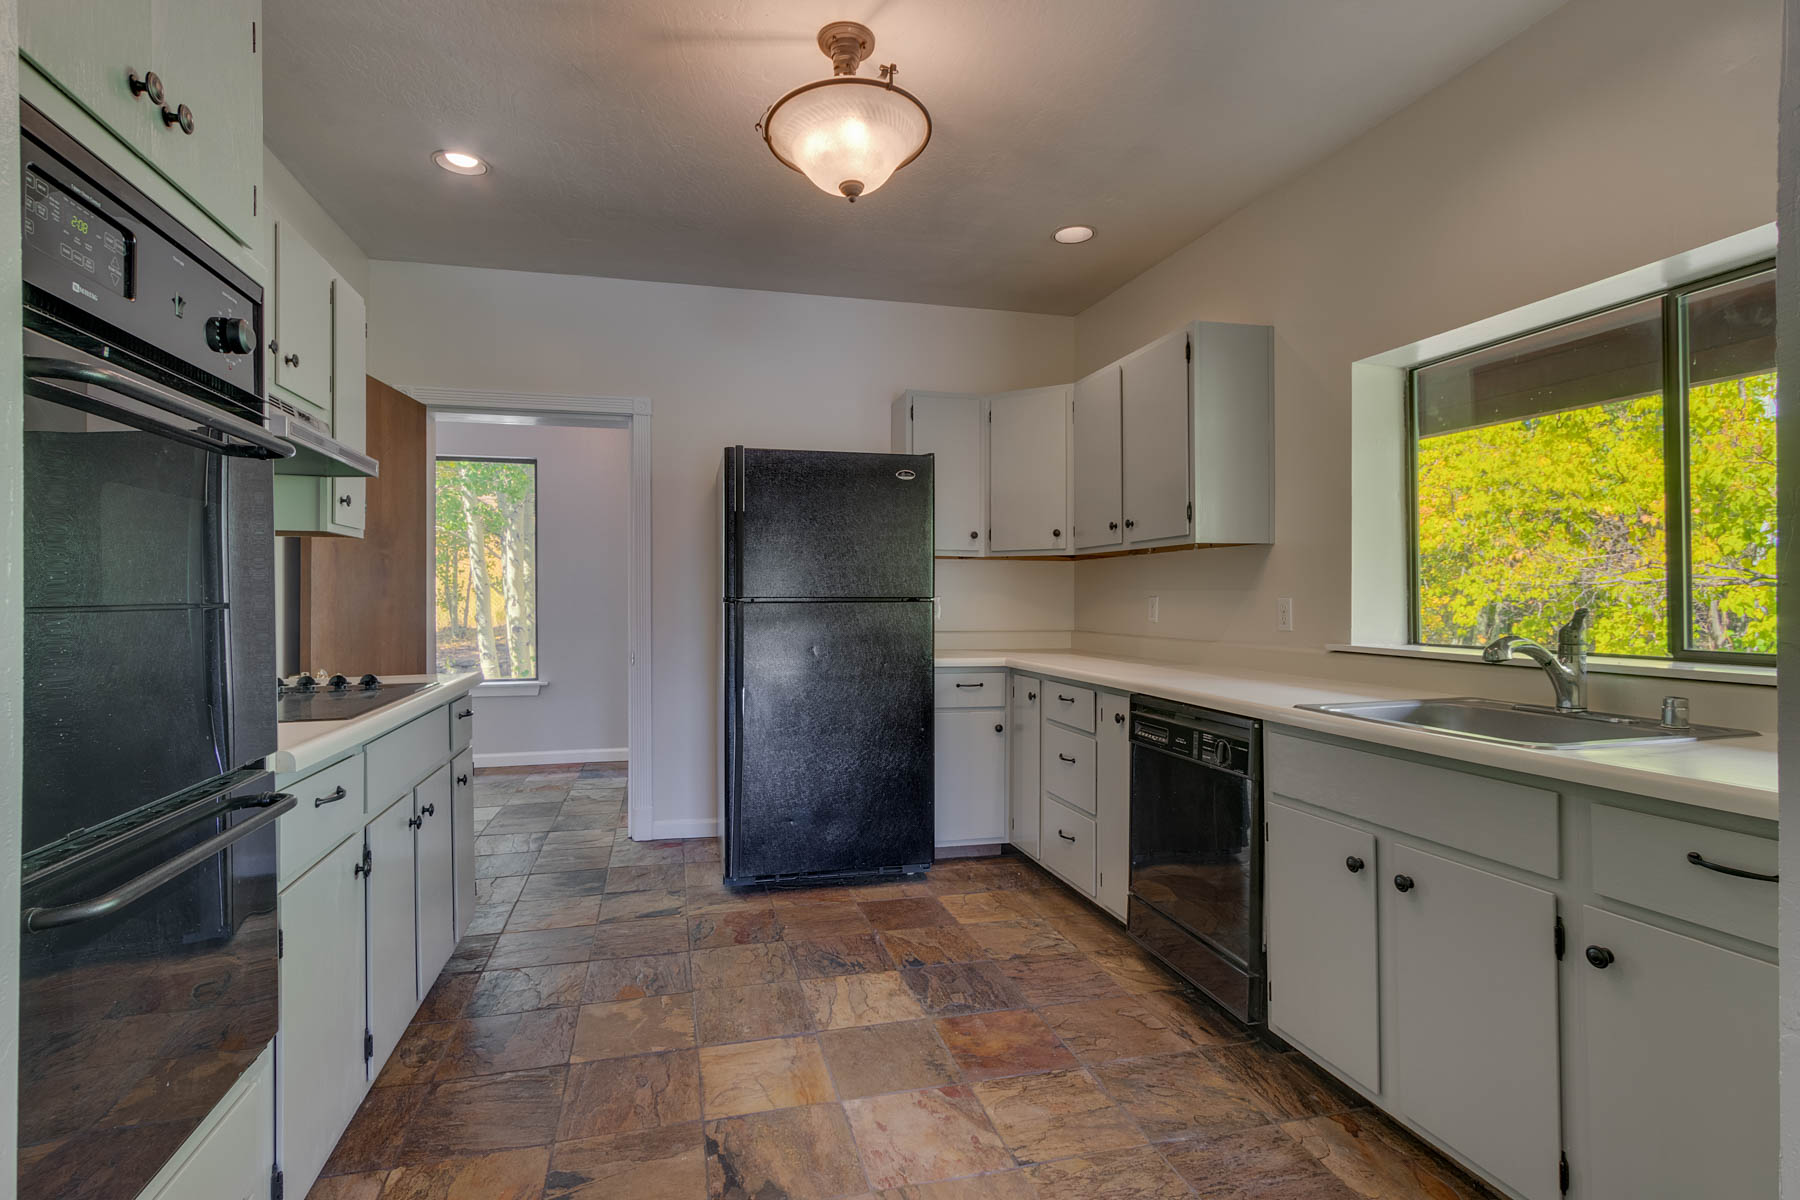 Additional photo for property listing at 10190 Keiser Ave., Truckee, CA 10190 Keiser Ave. Truckee, California 96161 Estados Unidos